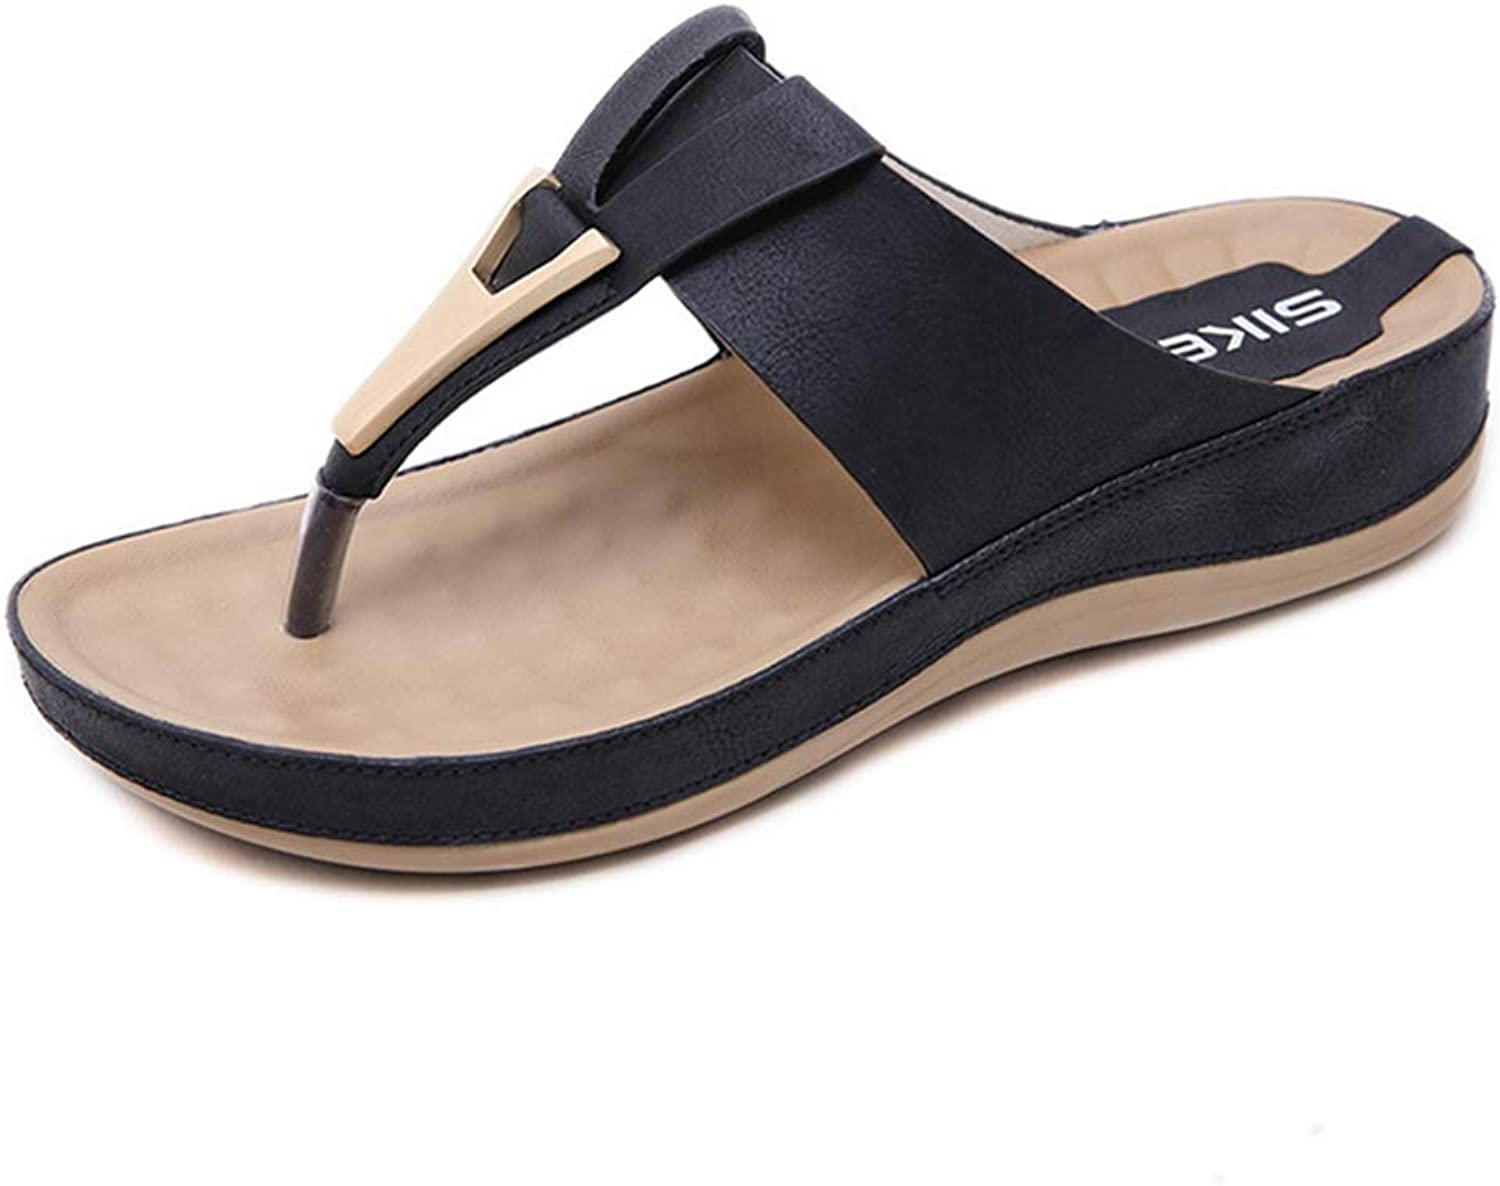 GIY Women's Thong Flip Flops Platform Sandals Casual Comfort Outdoor Orthotic Arch Support Flat Wedges Slippers